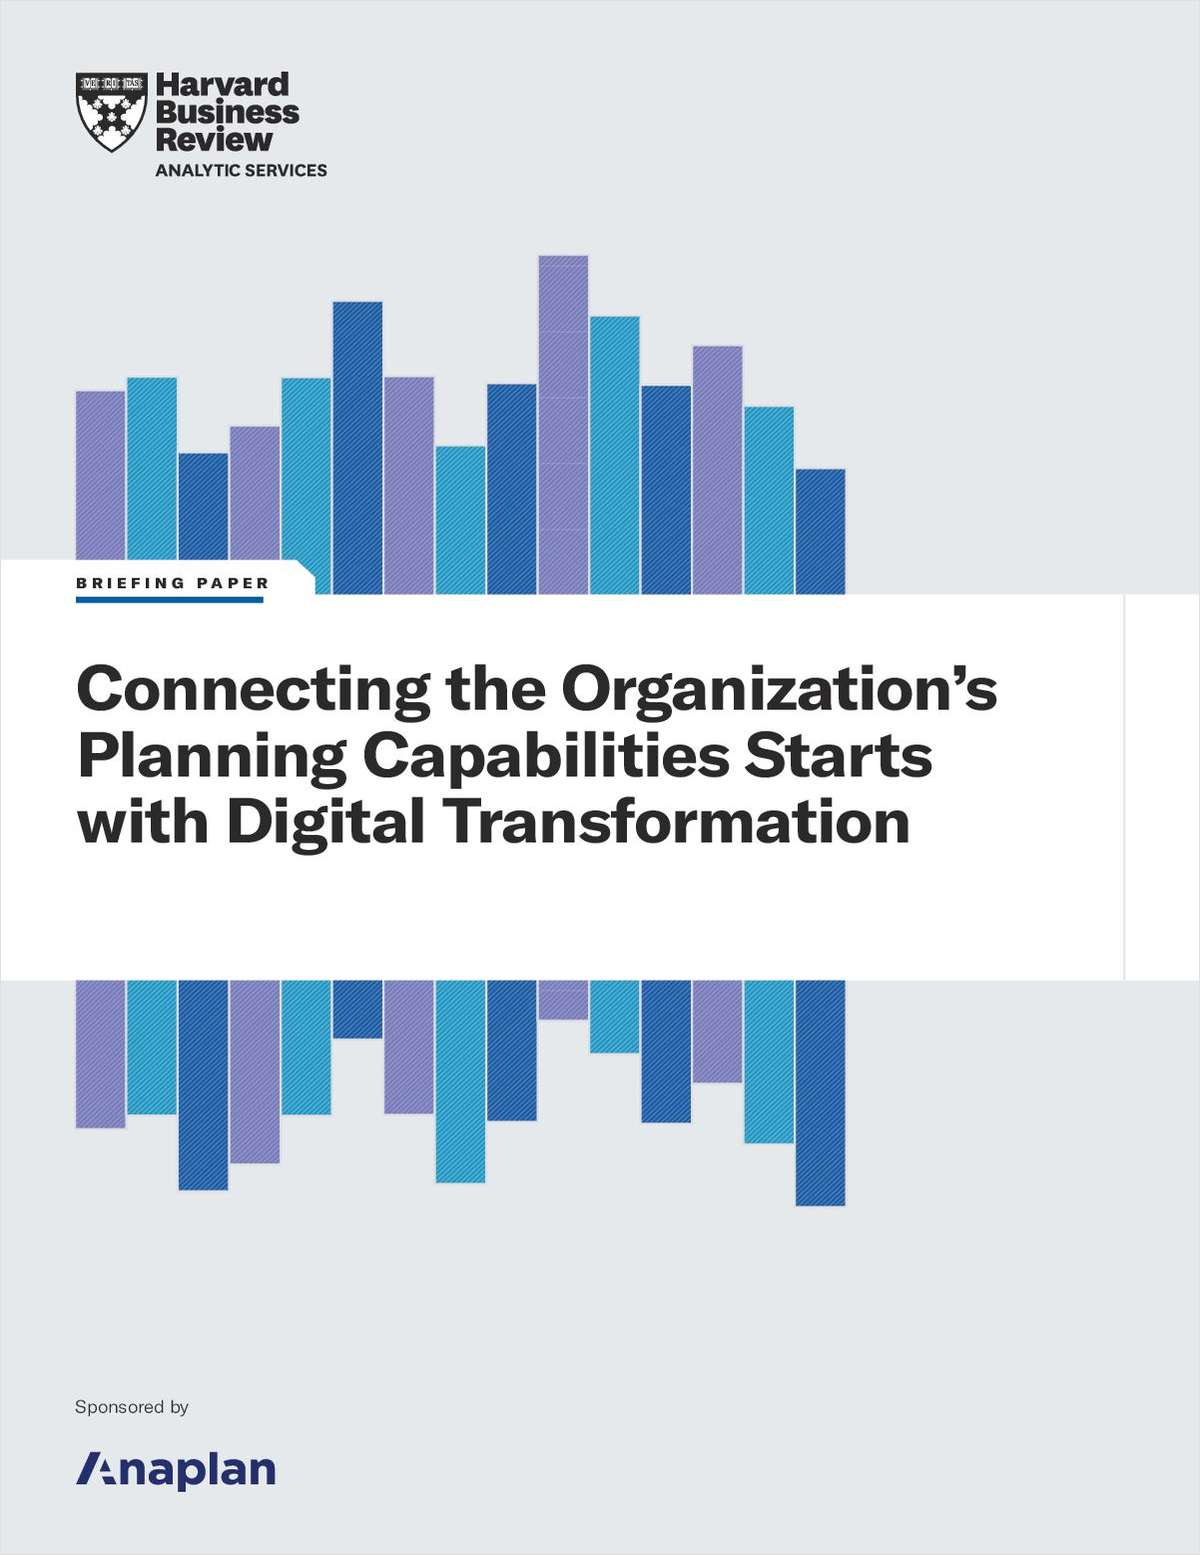 Harvard Business Review: Connecting the Organization's Planning Capabilities Starts with Digital Transformation